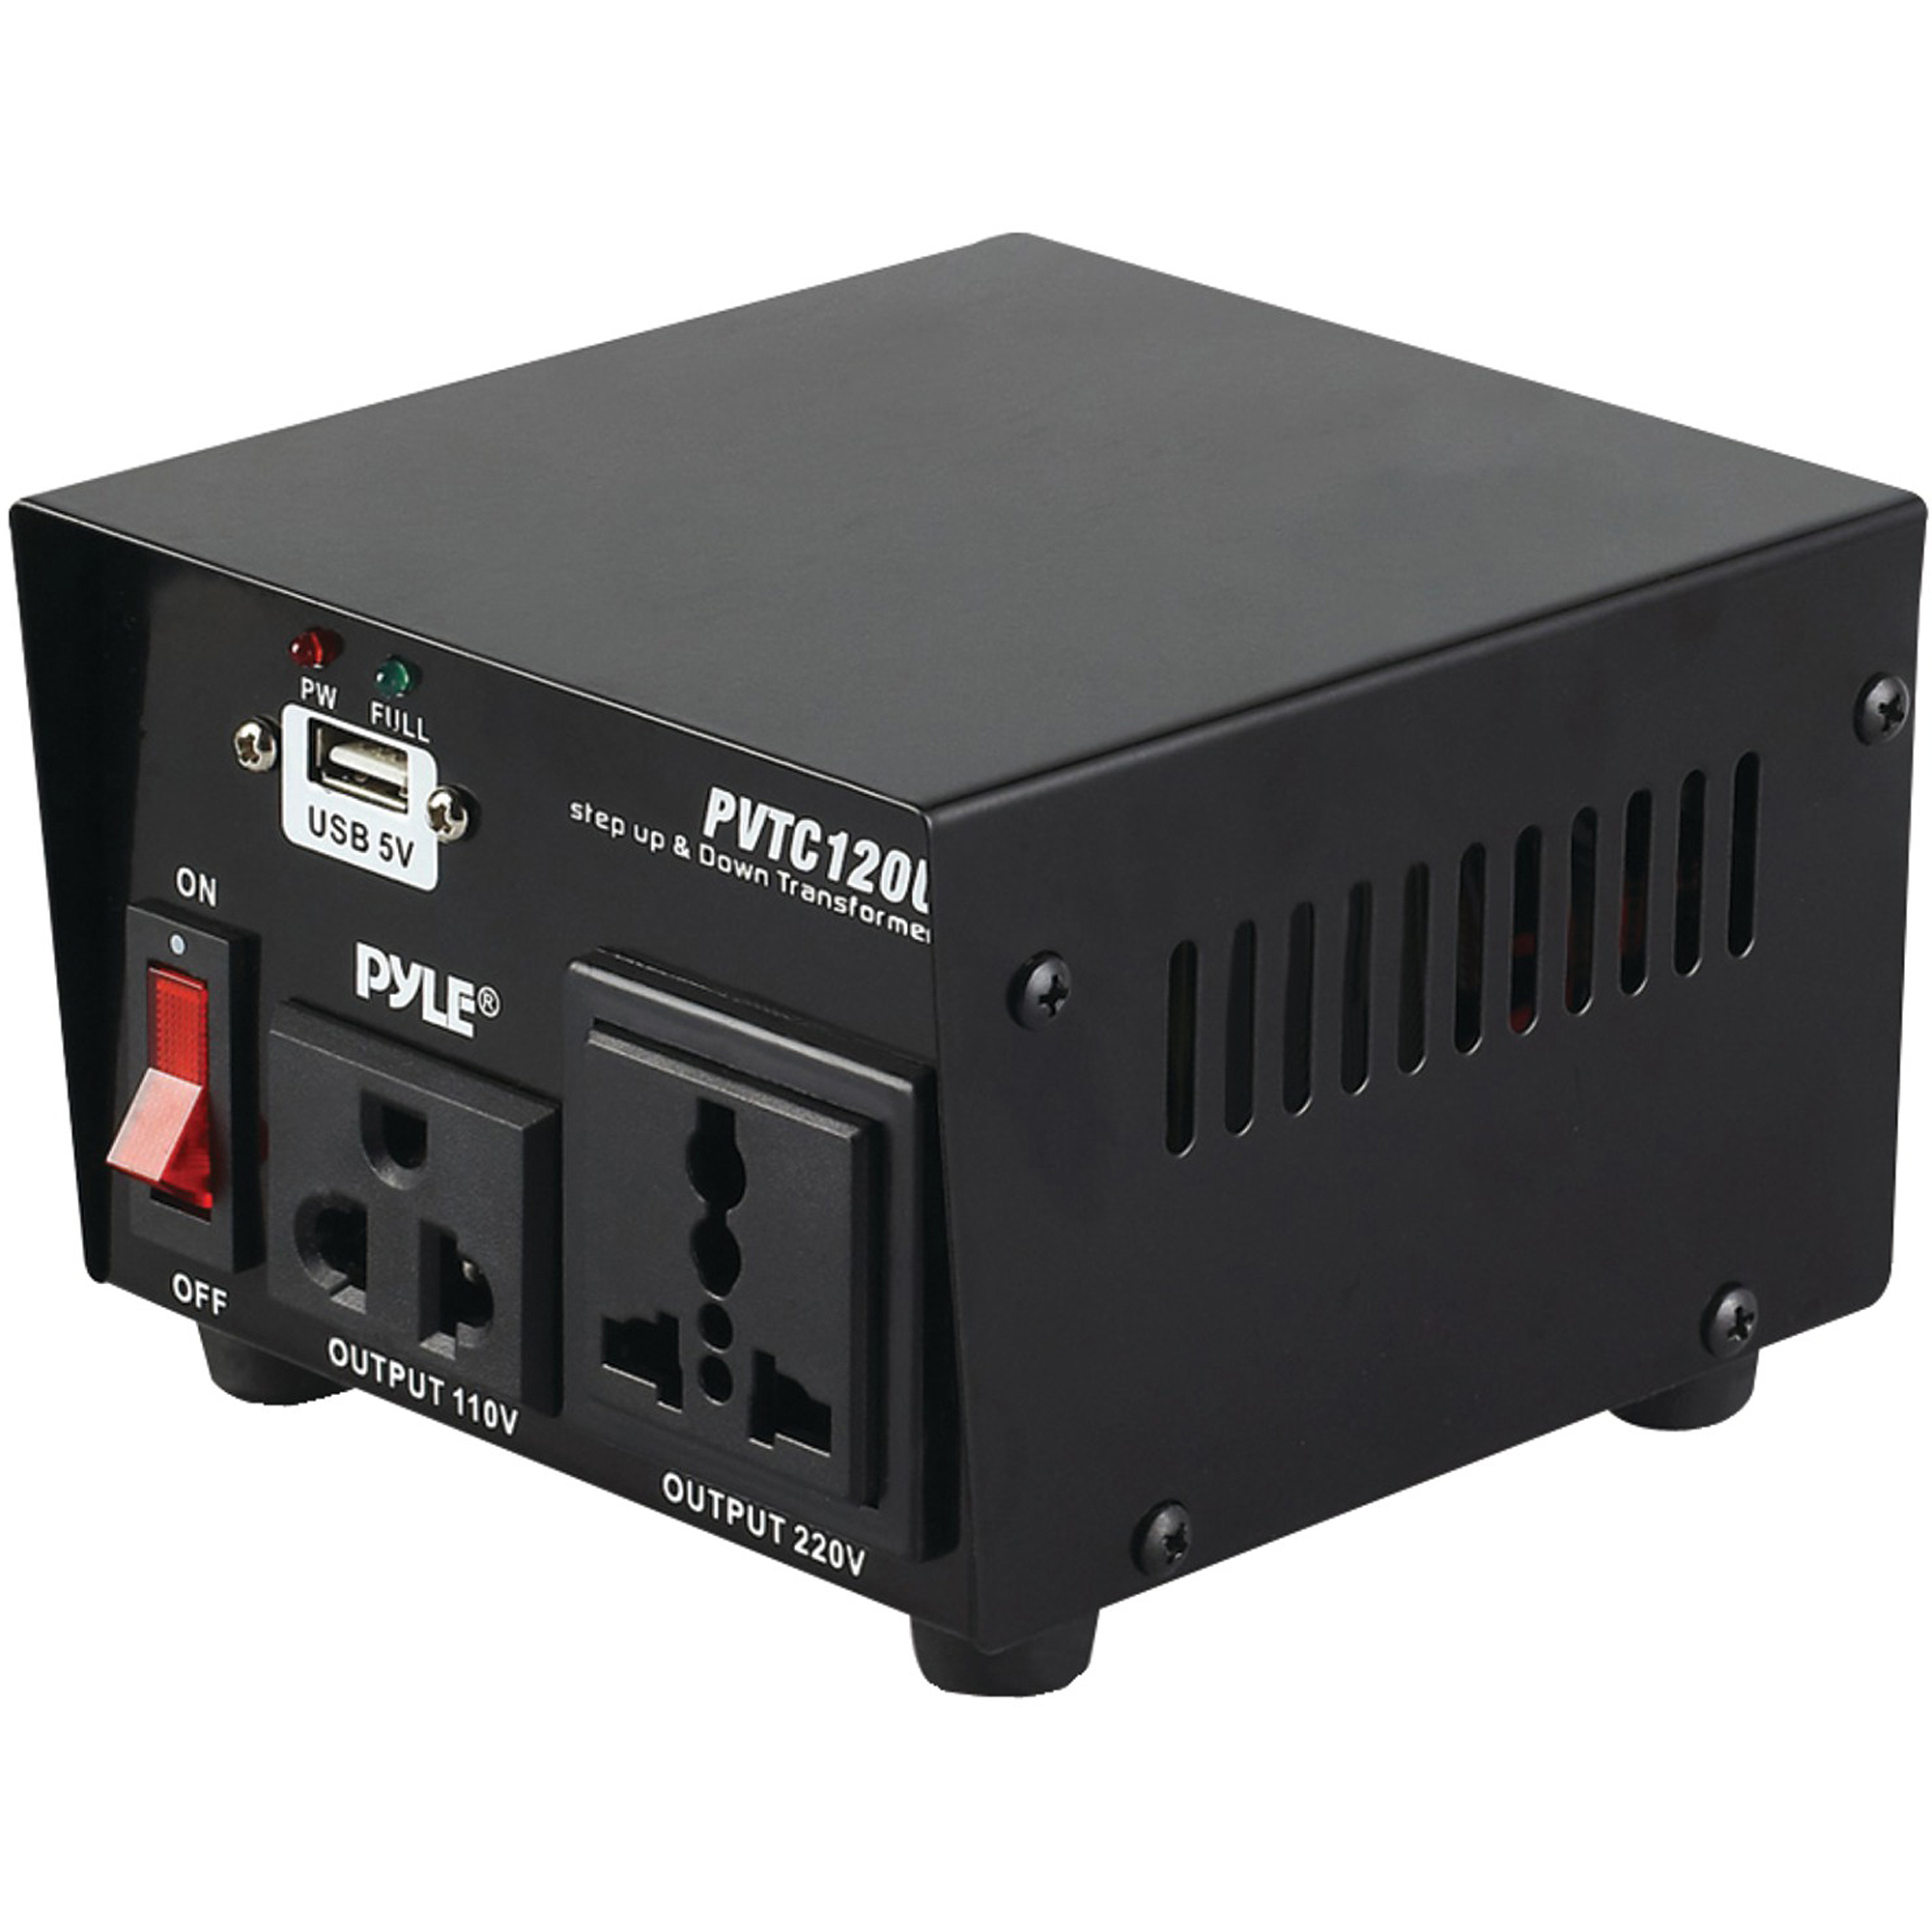 Pyle-meters PVTC120U Step Up and Step Down Voltage Converter Transformer with USB Charging Port